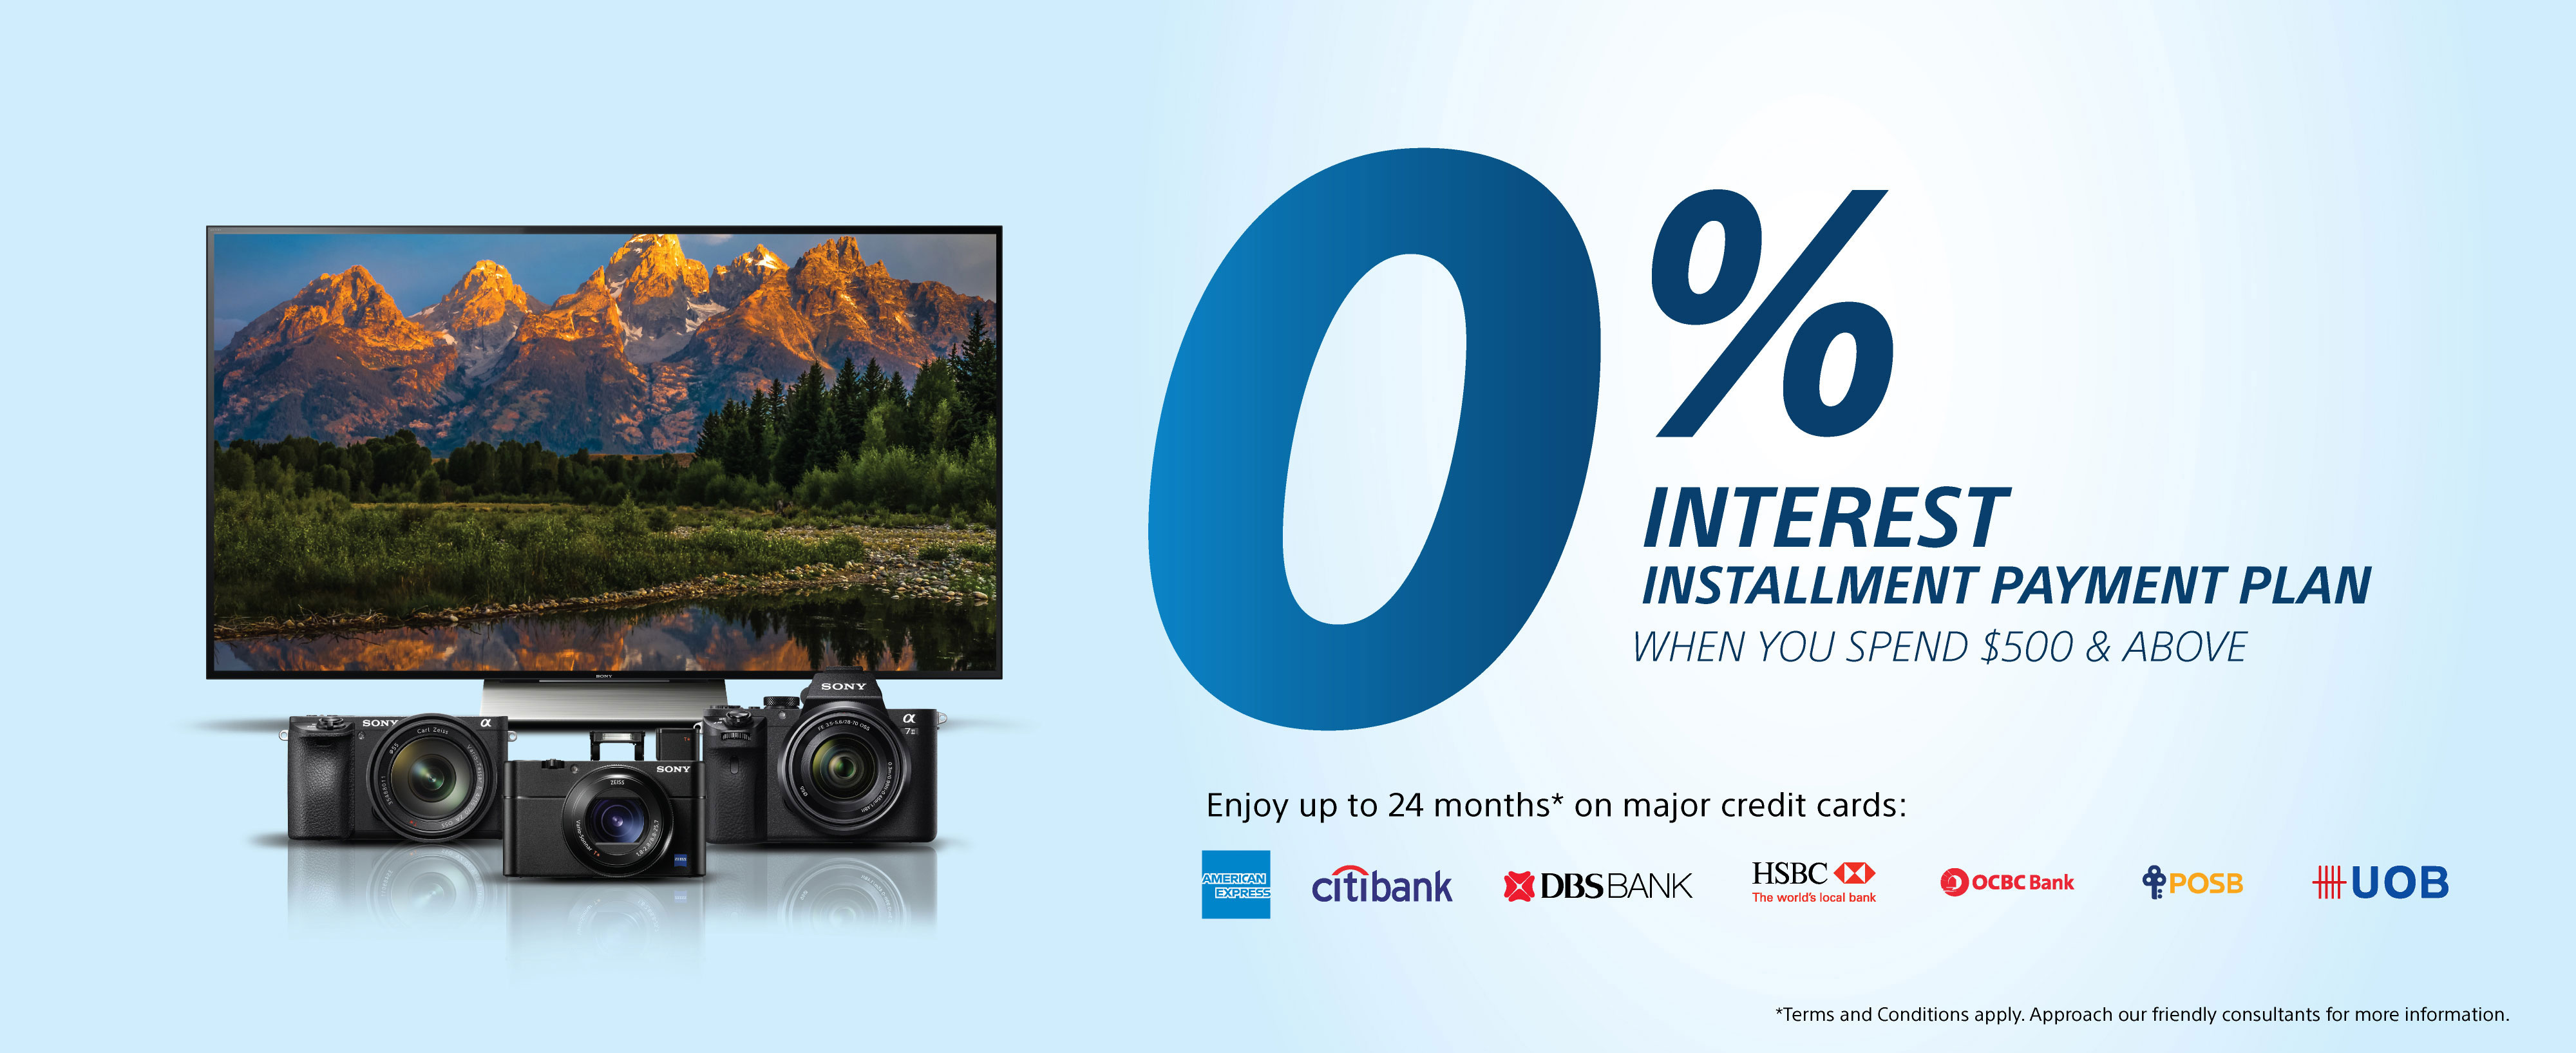 0% Interest Installment Payment Plan when you spend $500 and above.